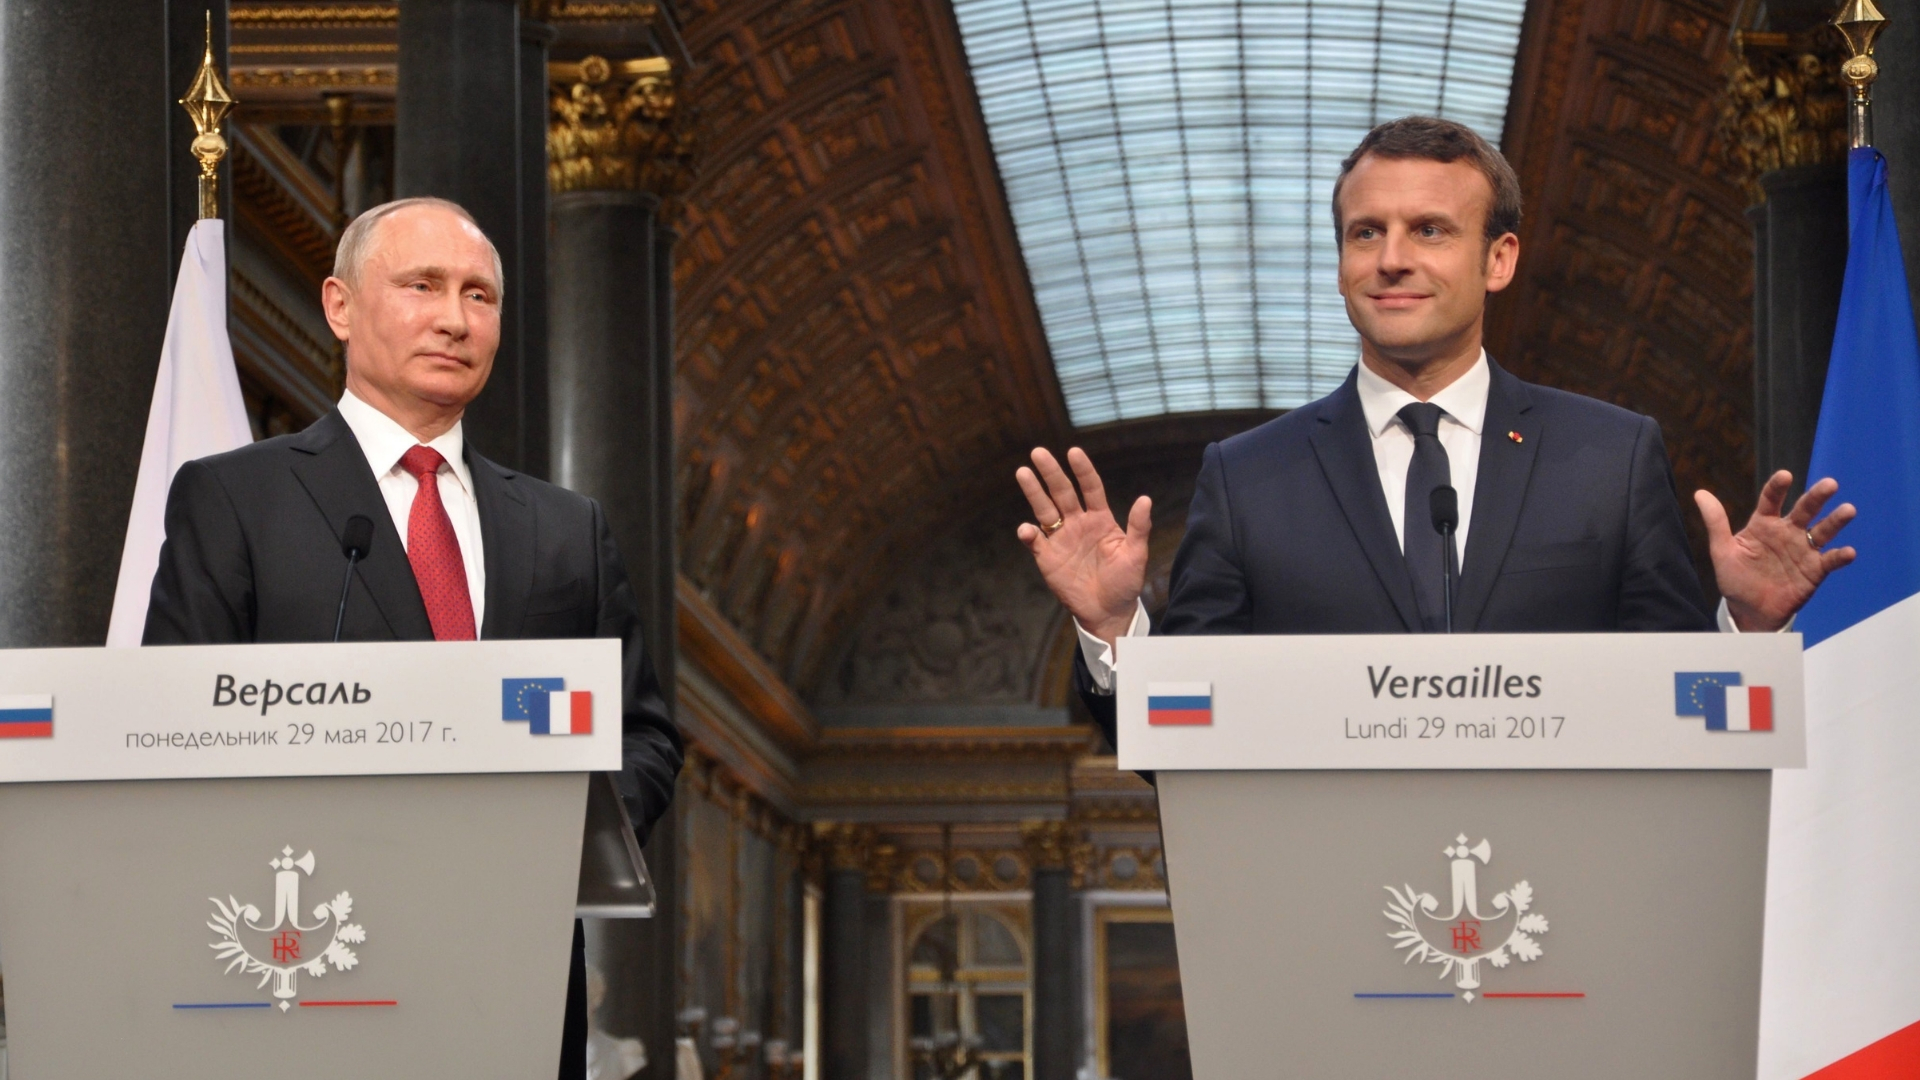 French President Emmanuel Macron to meet Vladimir Putin: 5 Geopolitical Effects You Need to Know